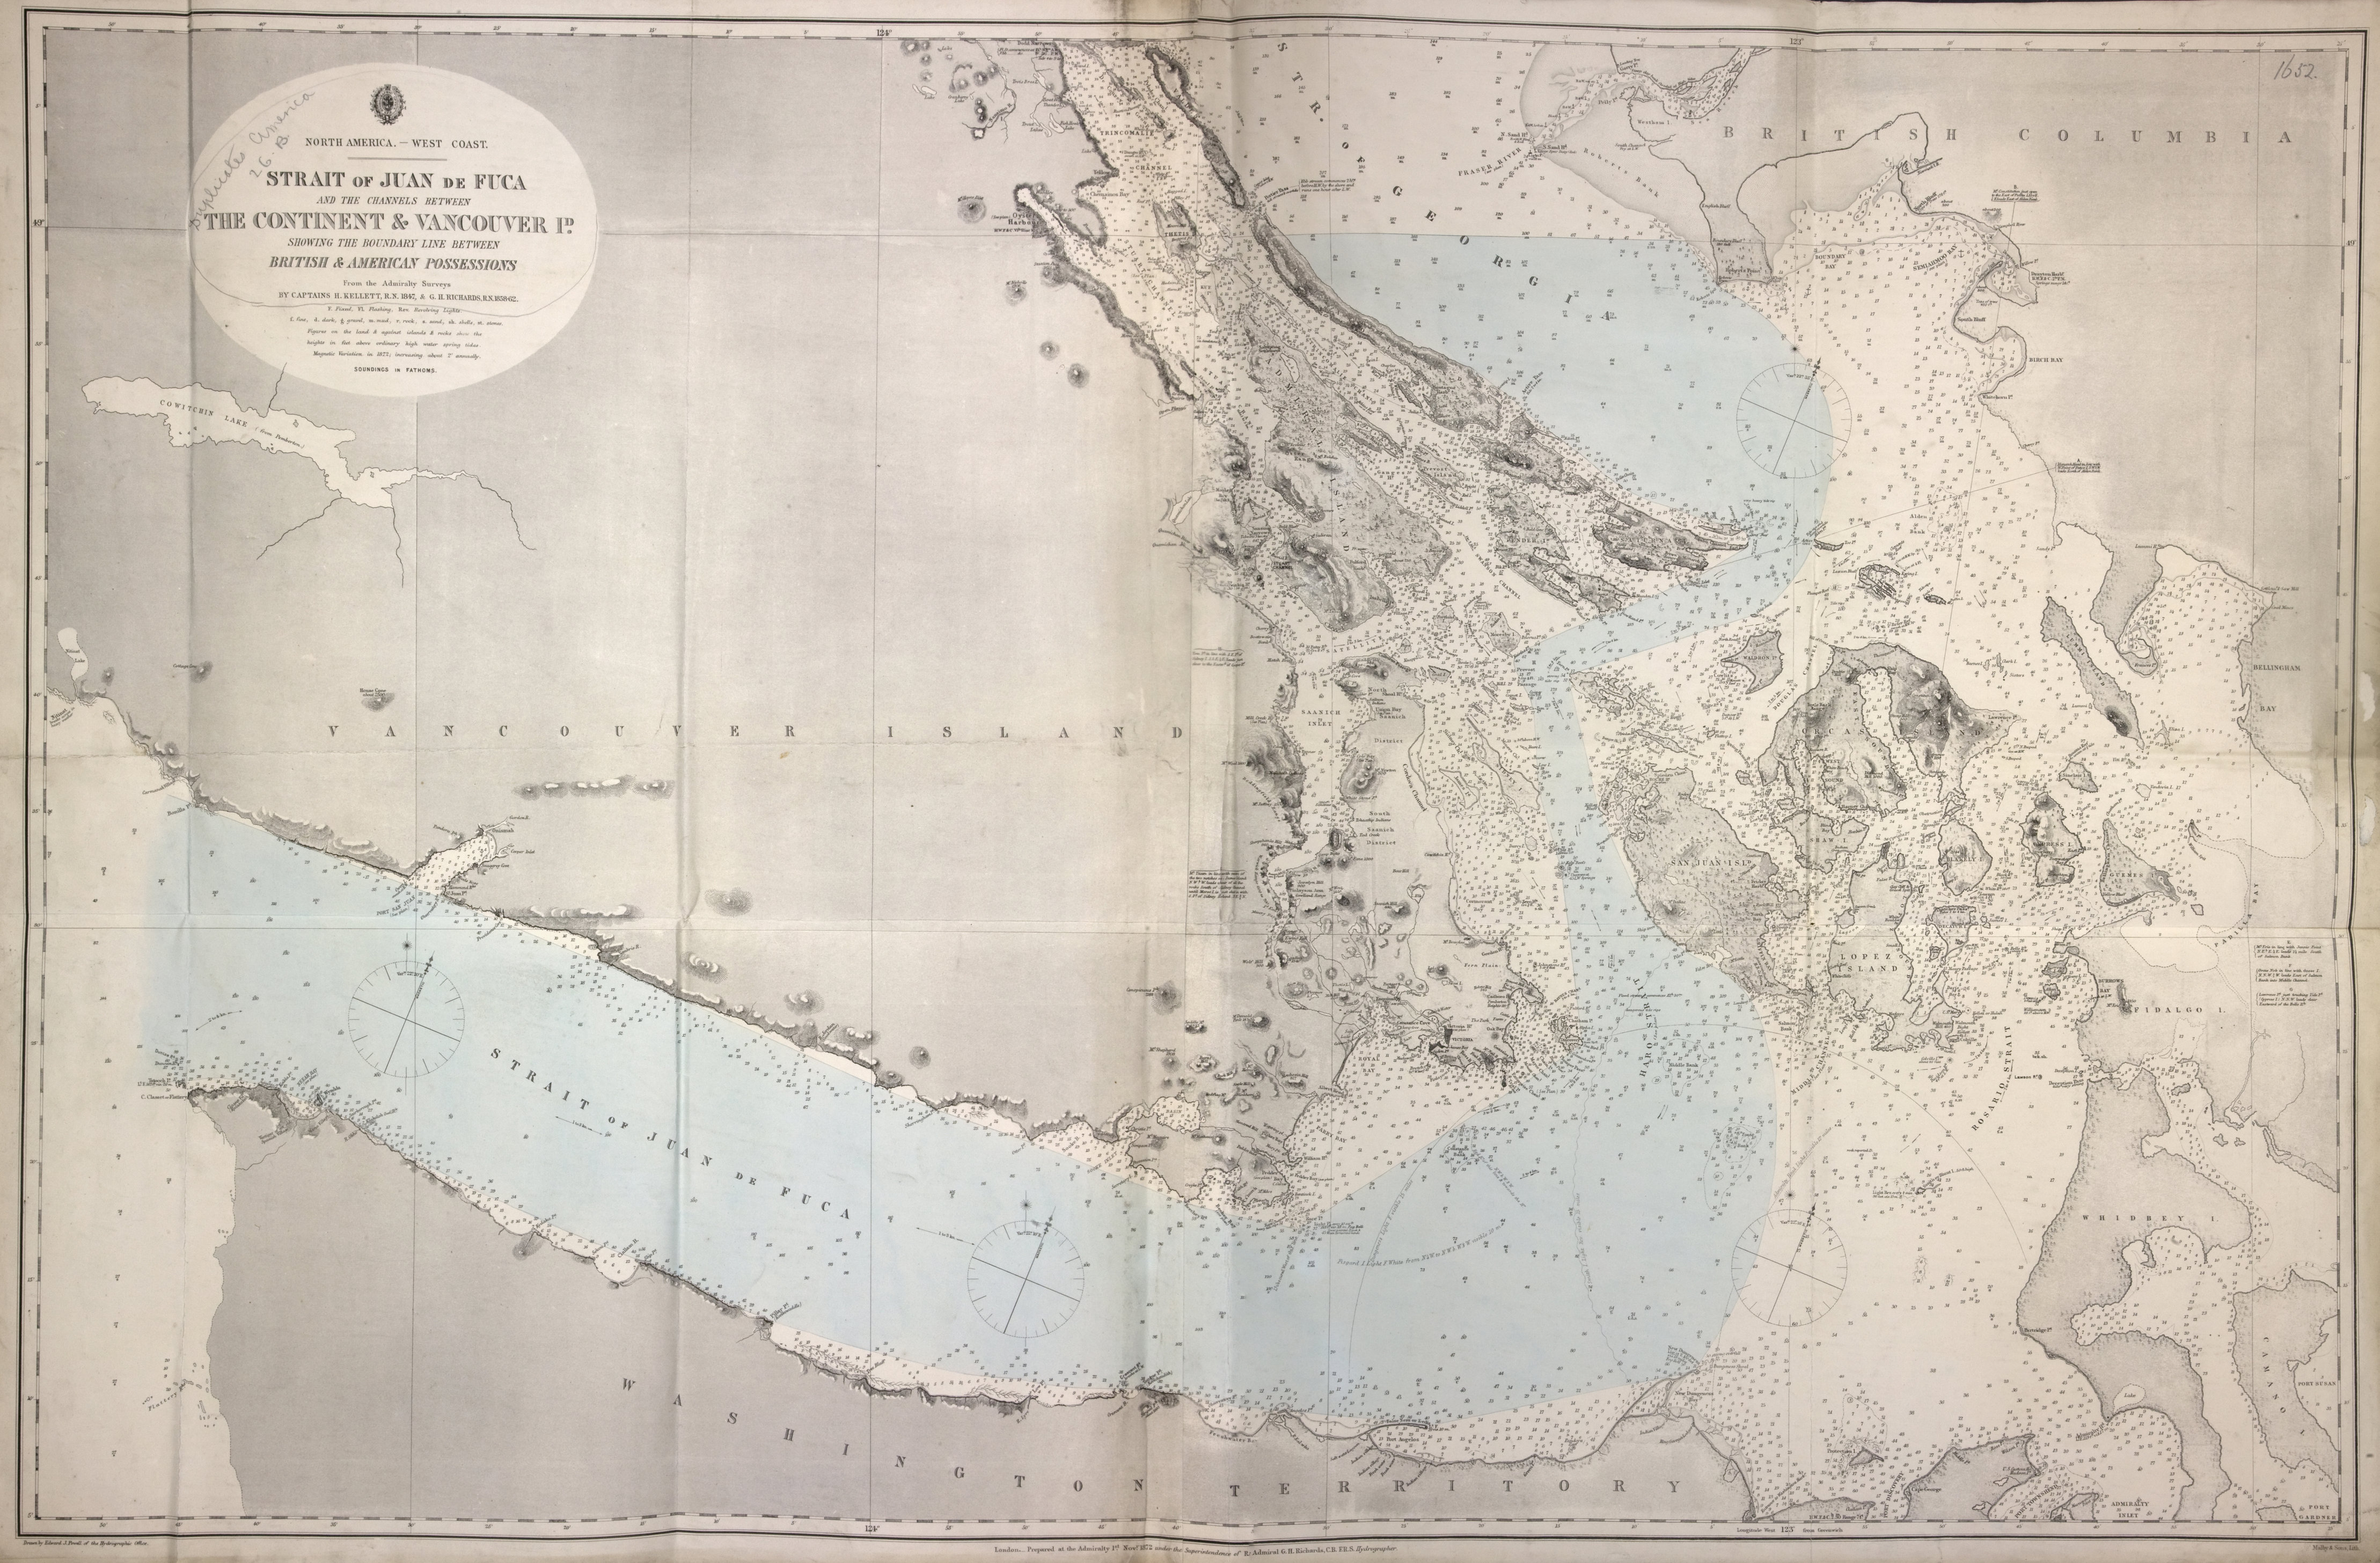 Strait of Juan de Fuca and the channels between the continent & Vancouver Id. showing the boundary line between British & American possessions.